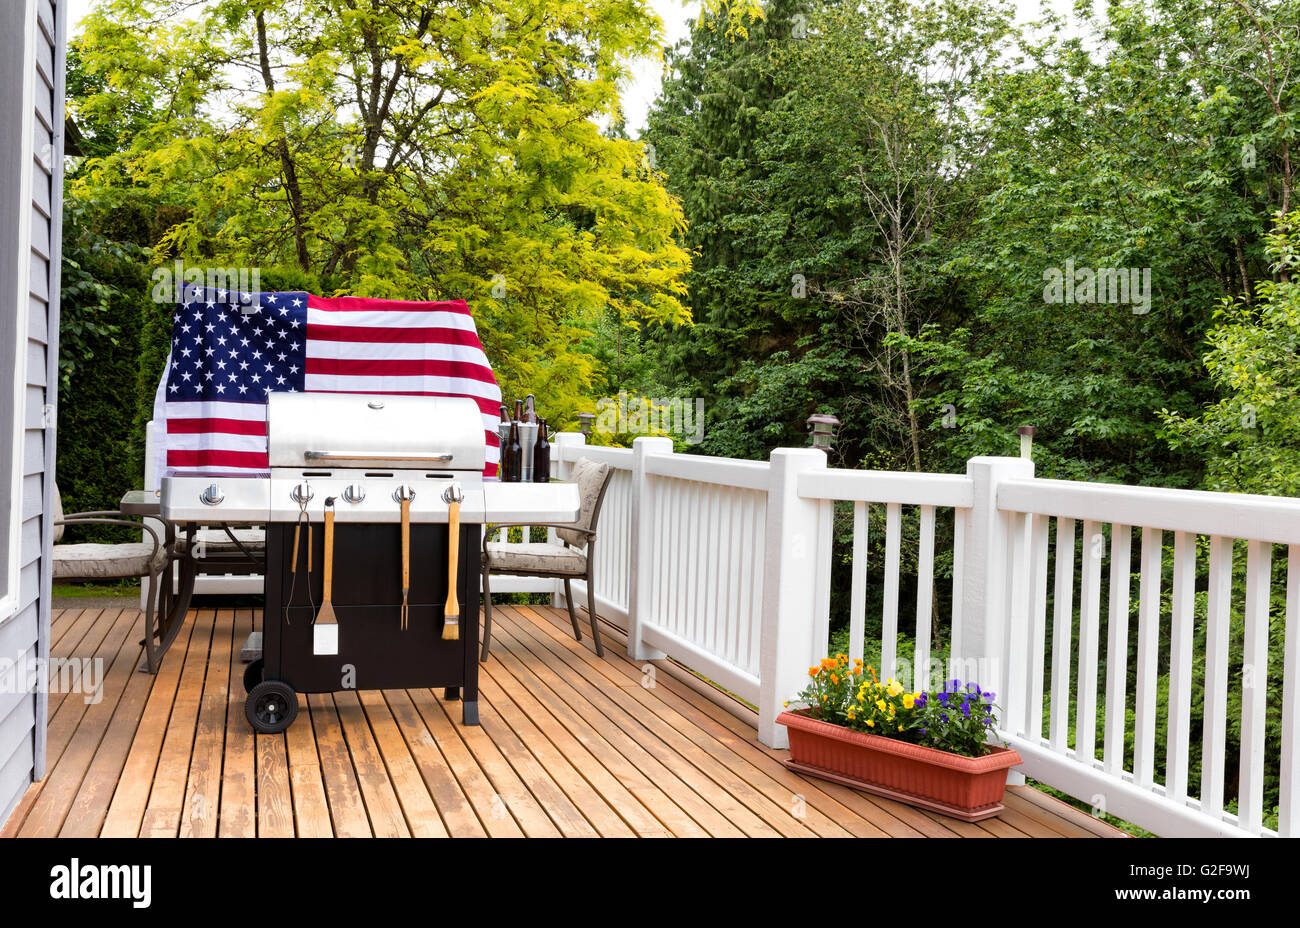 Home Outdoor Patio And Barbecue Cooker With Bucket Of Cold Bottled Beer On  Ice With USA Wooden Flag In Background.